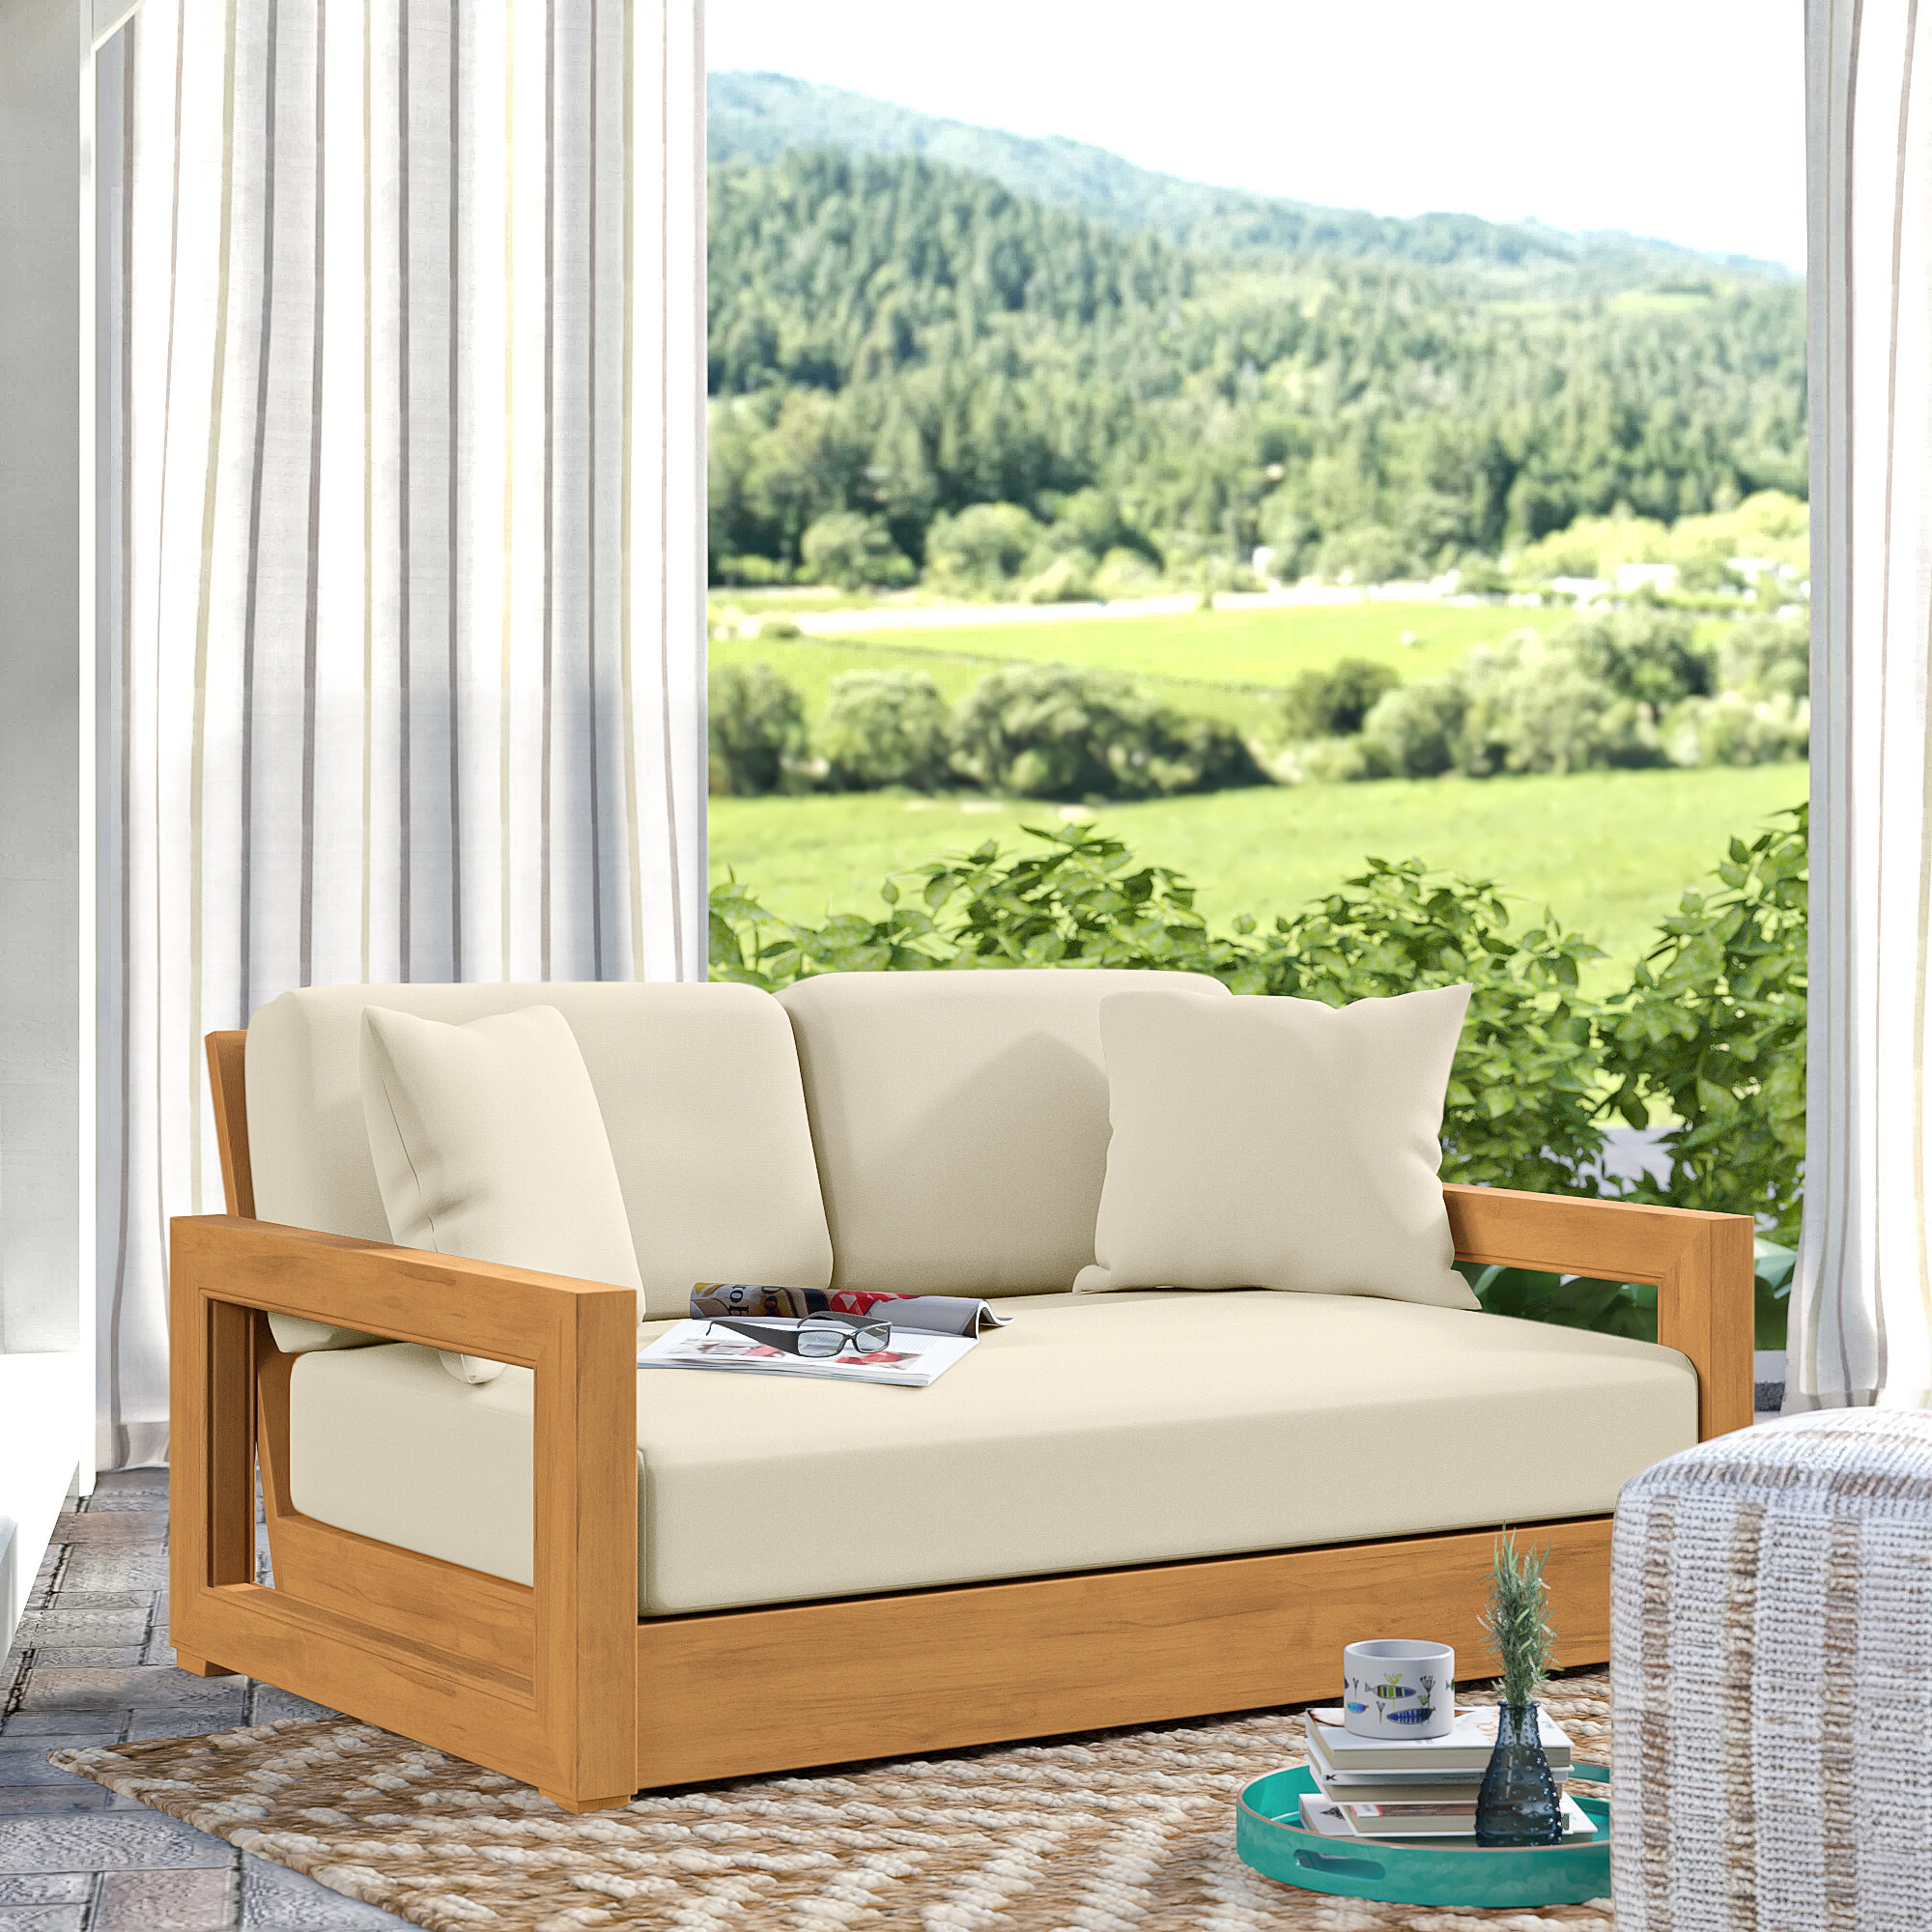 Lakeland Teak Loveseat With Cushions With Regard To Latest Ellanti Teak Patio Daybeds With Cushions (View 10 of 20)